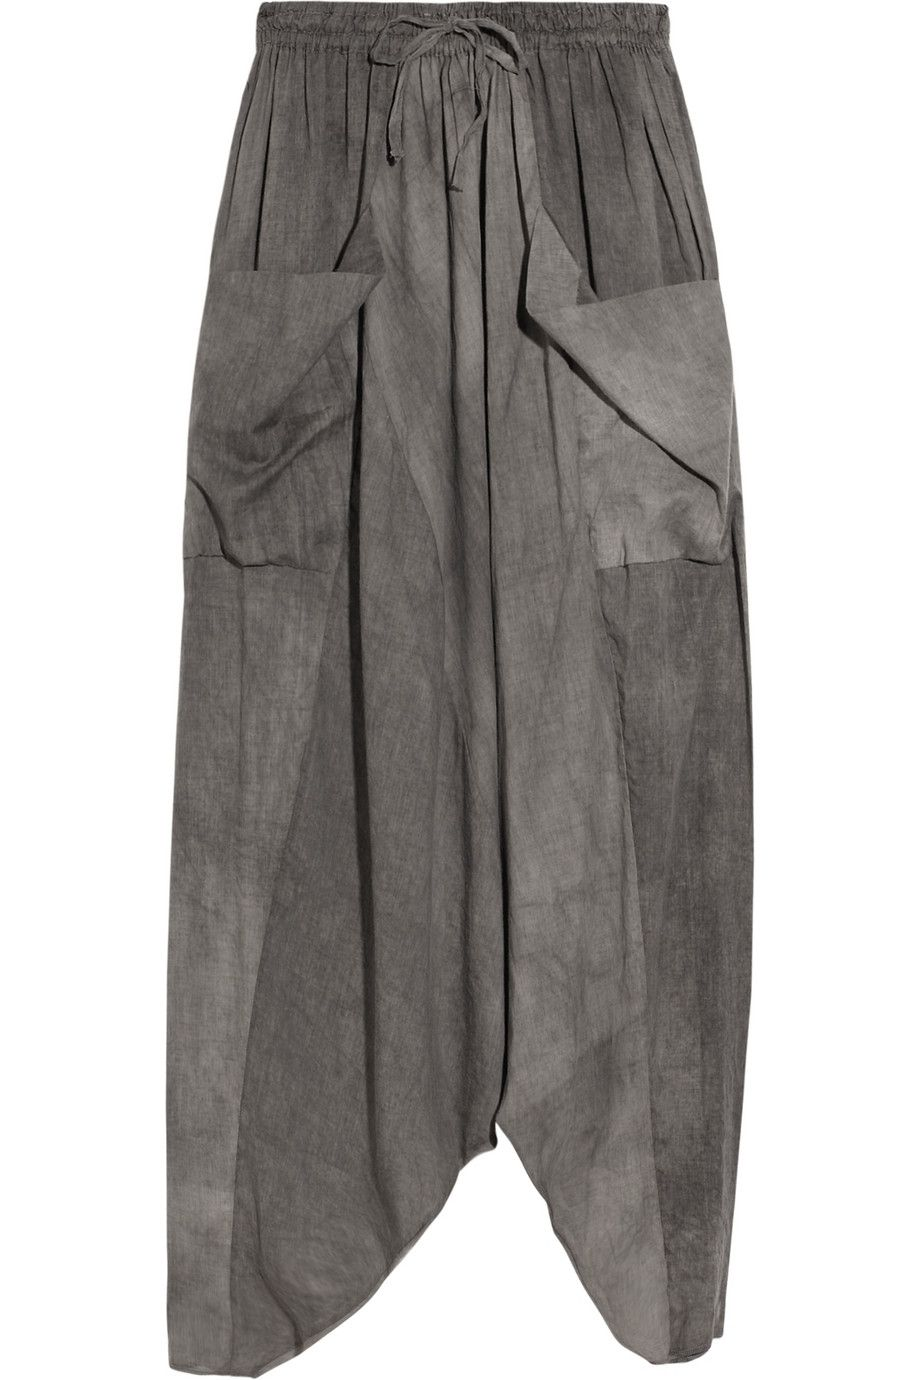 dropped crotch cotton pants so hammer time home decor pinterest